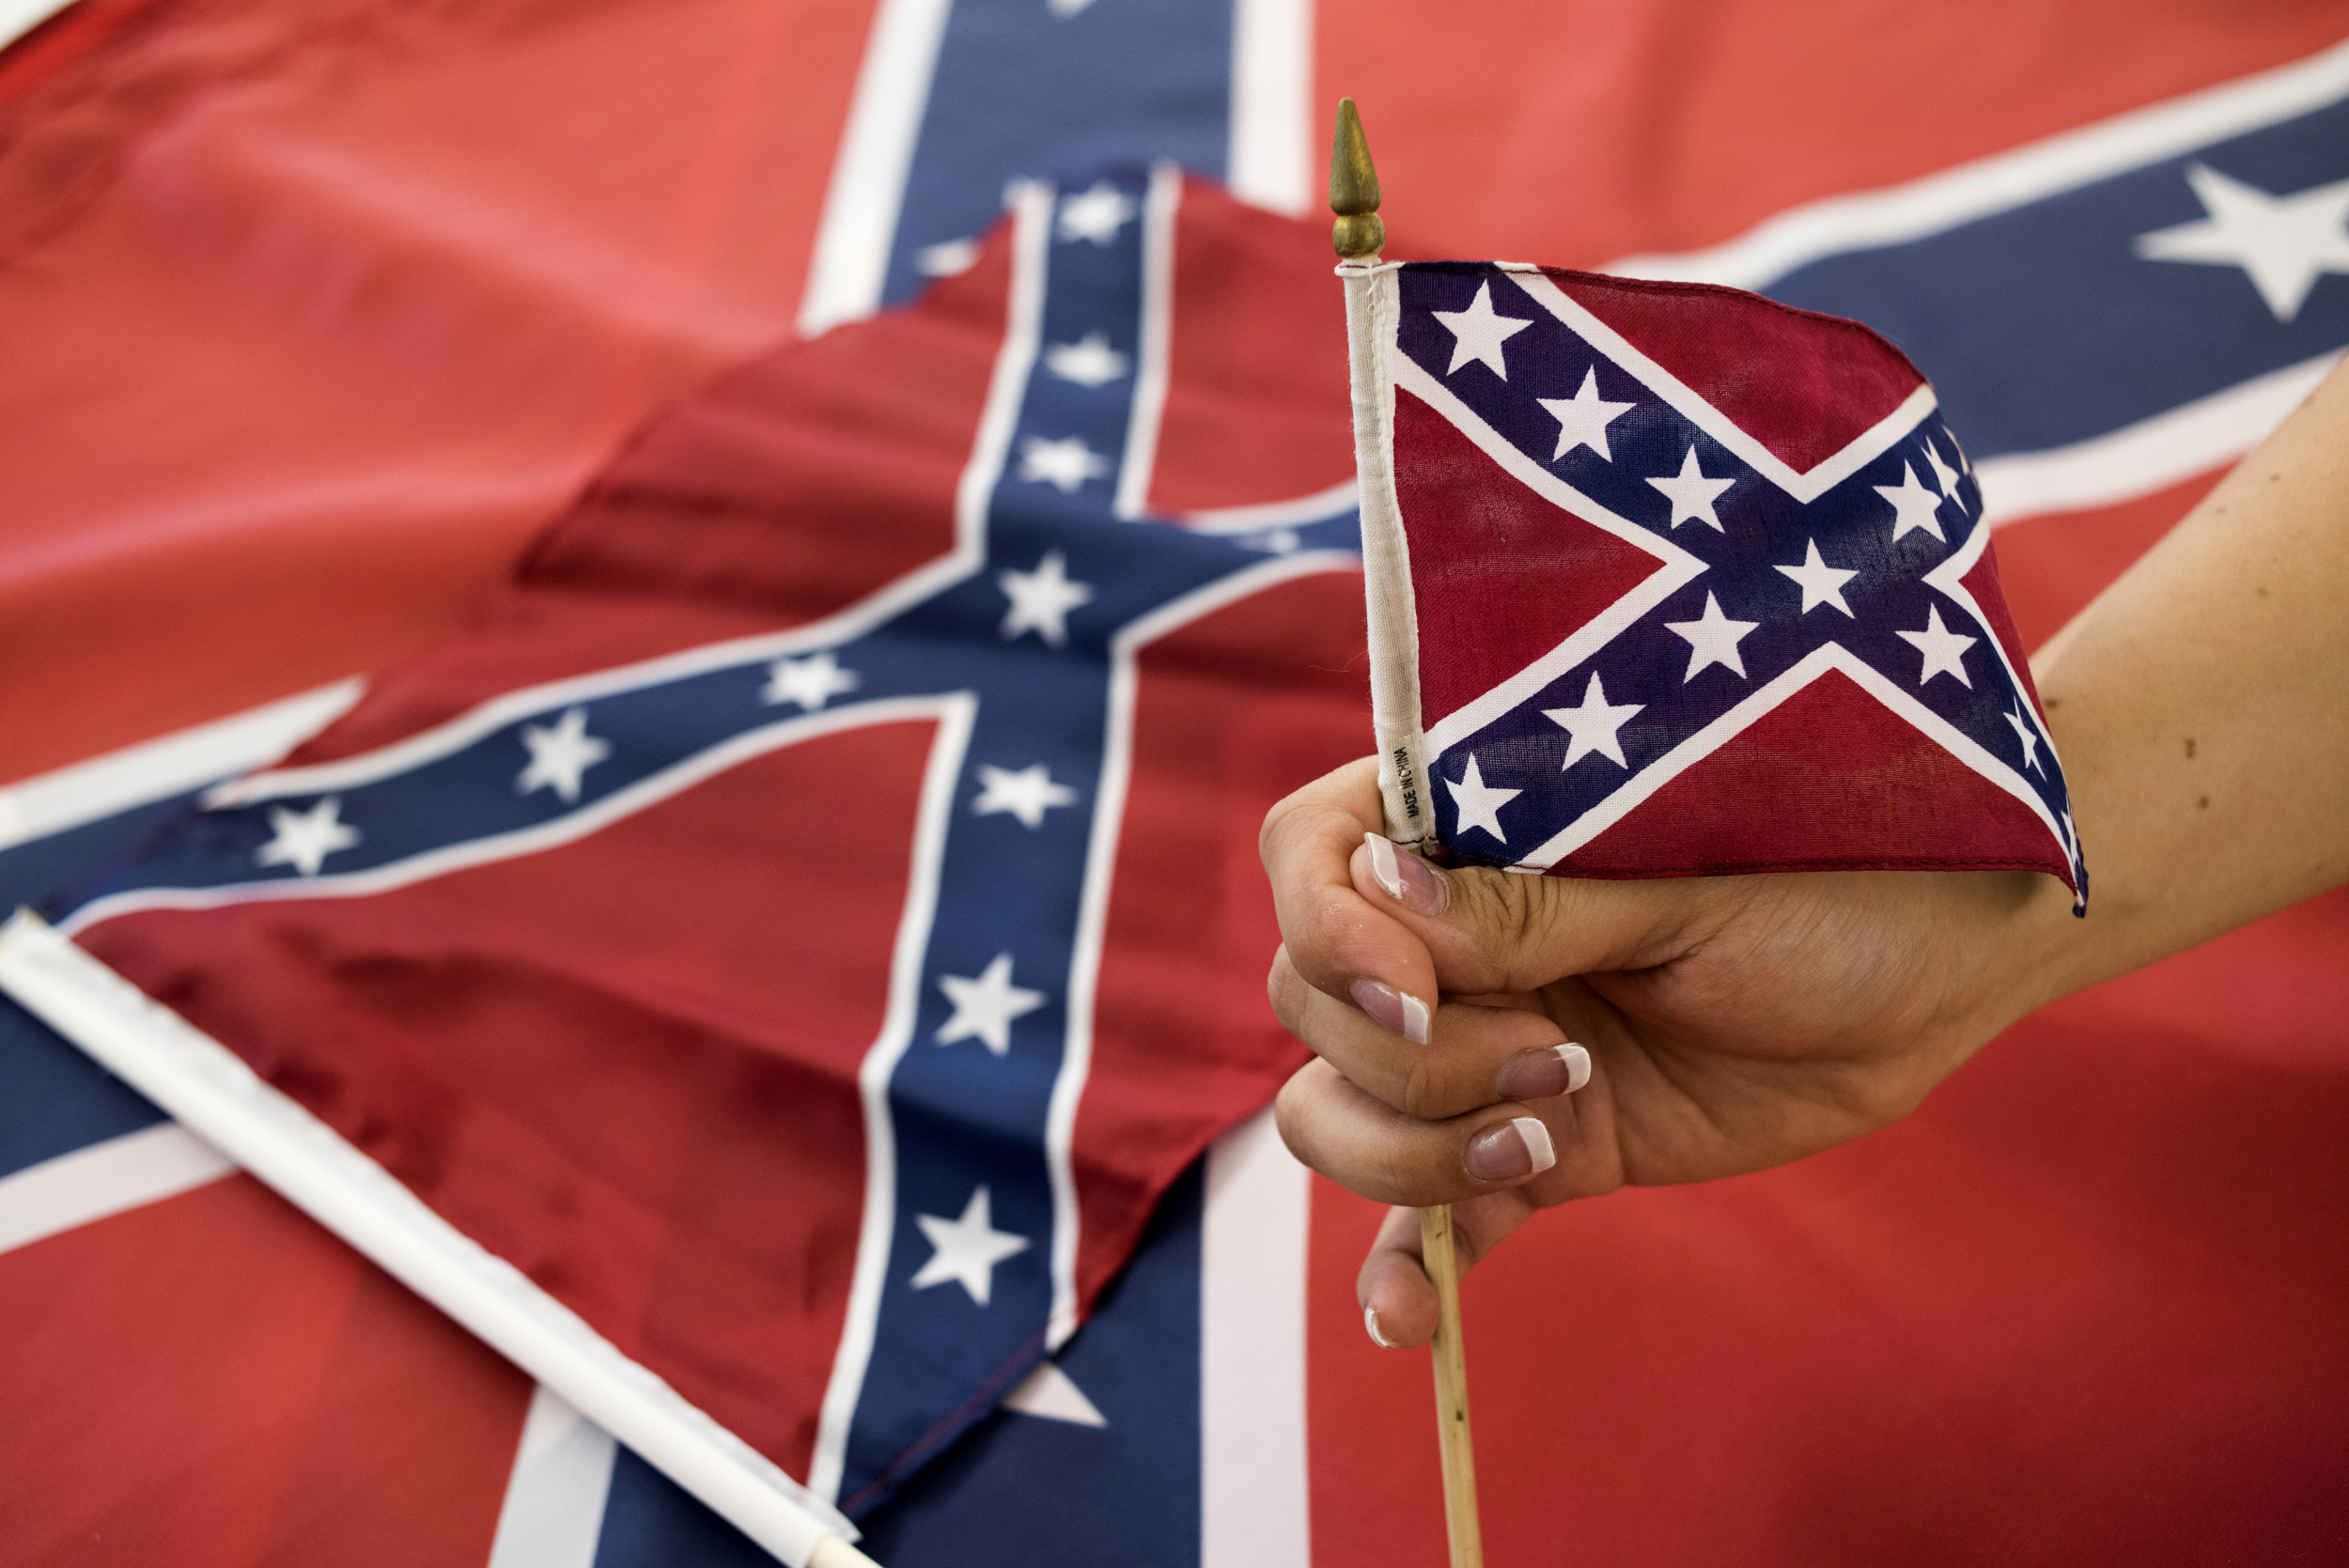 Ohio Lawmakers Reject Proposal to Ban Confederate Flags and Memorabilia at County Fairs